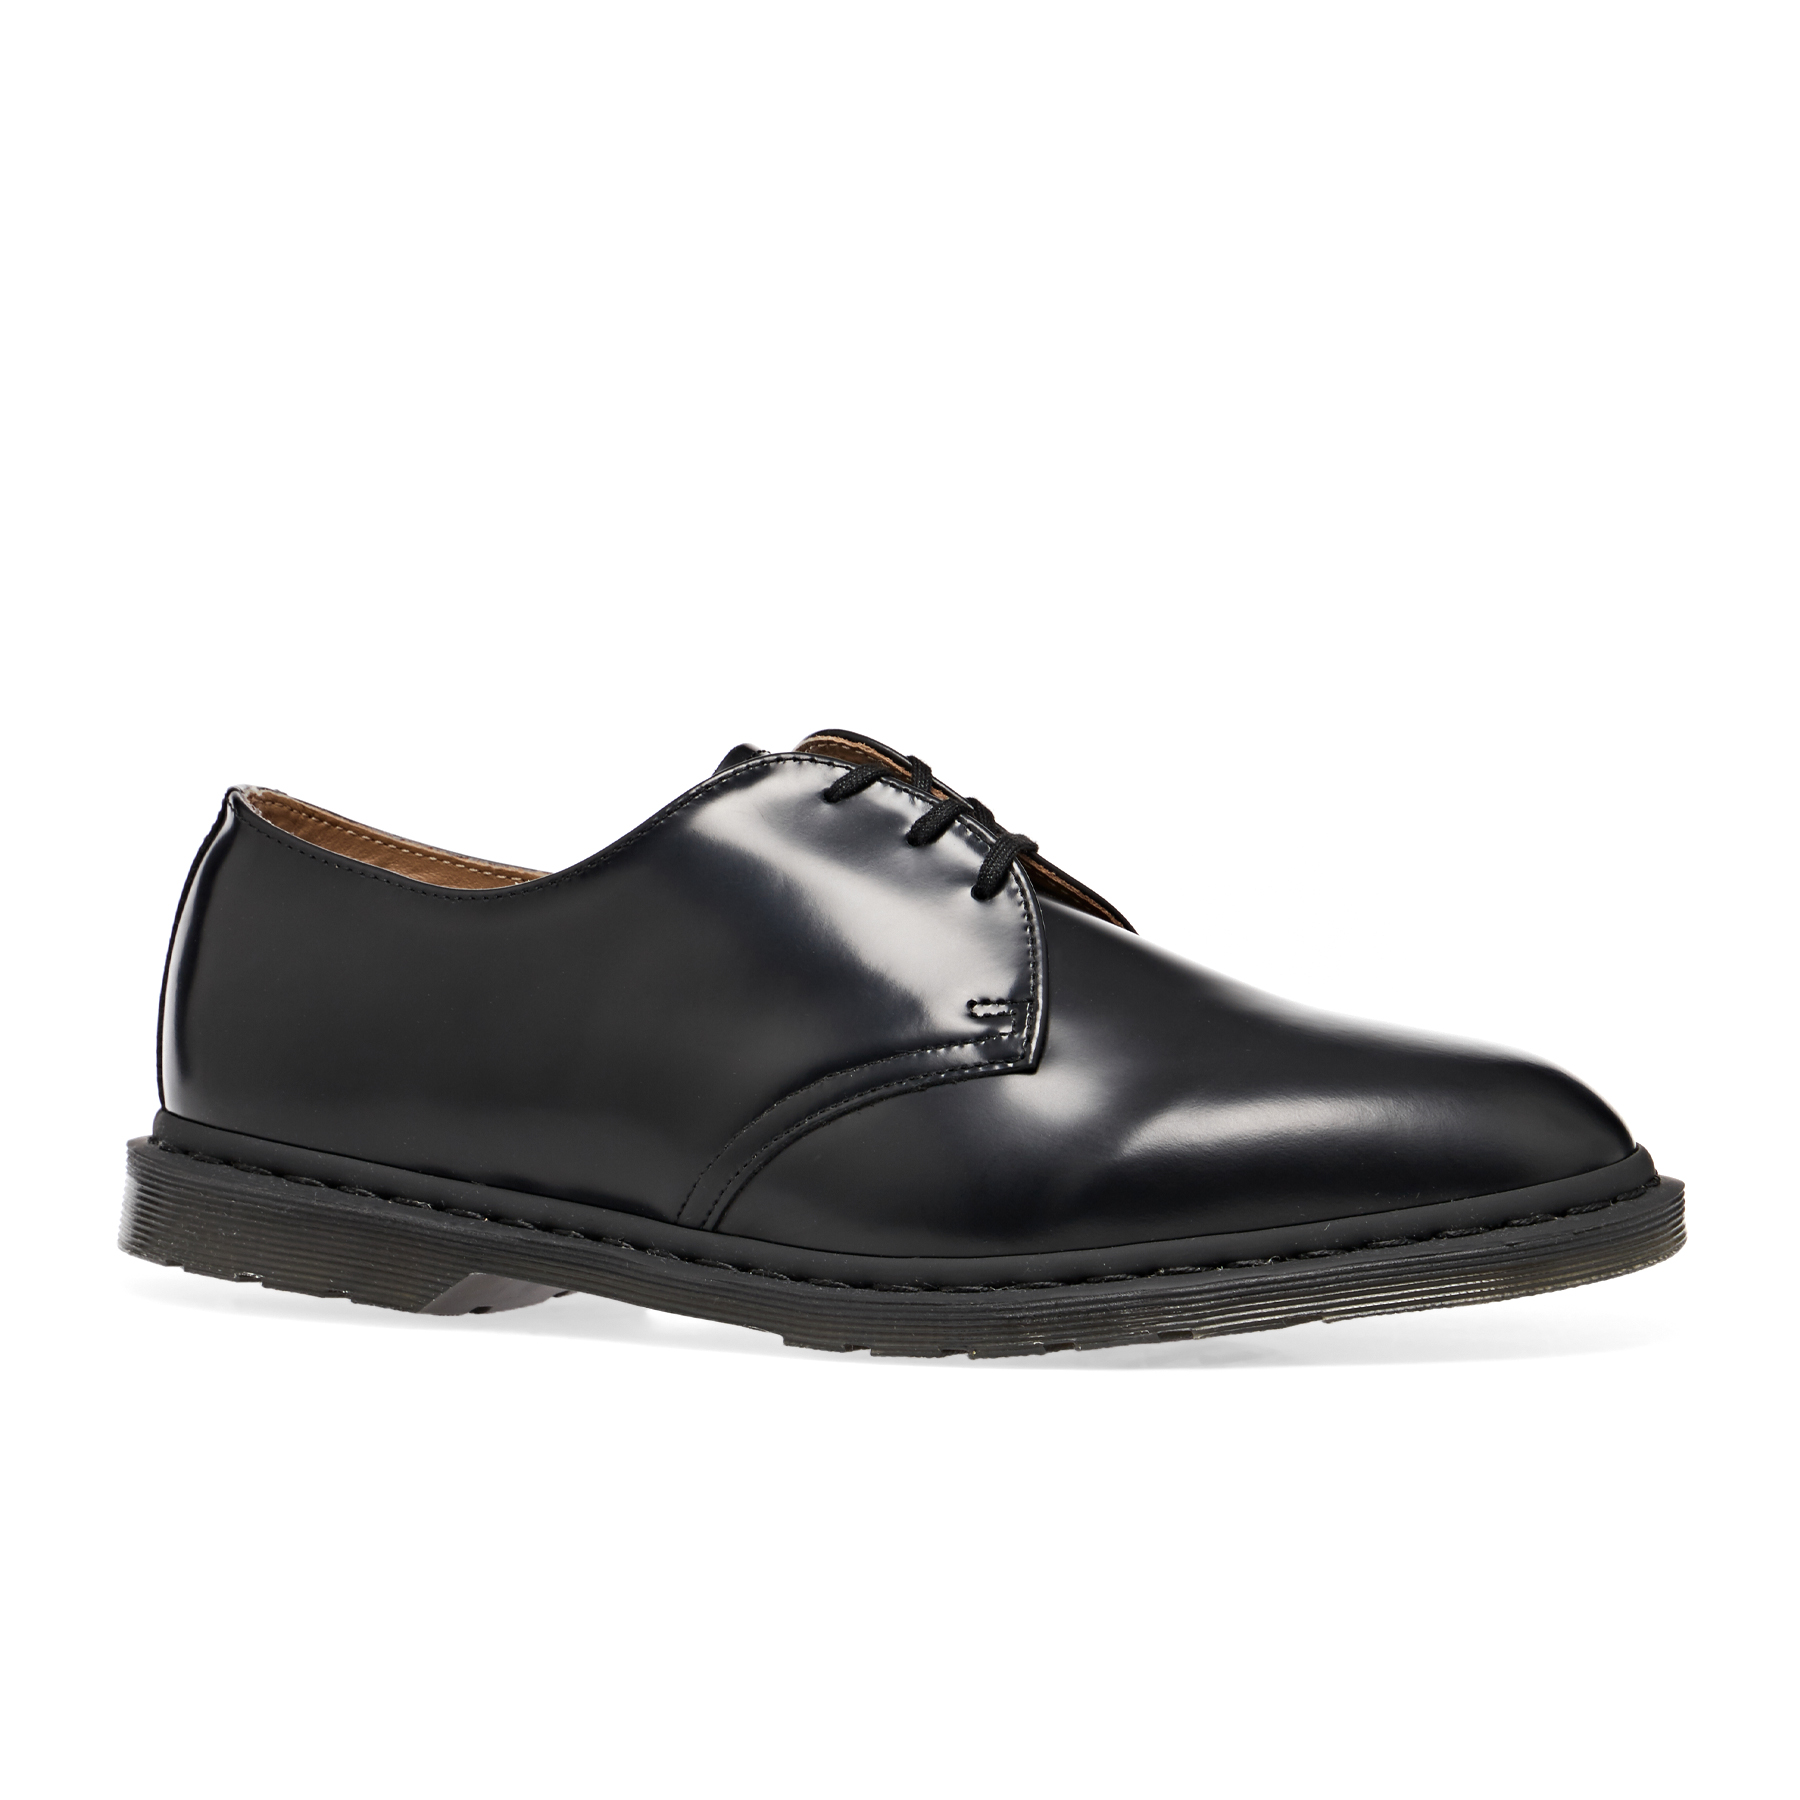 Dr Martens Archie II Smooth Shoes